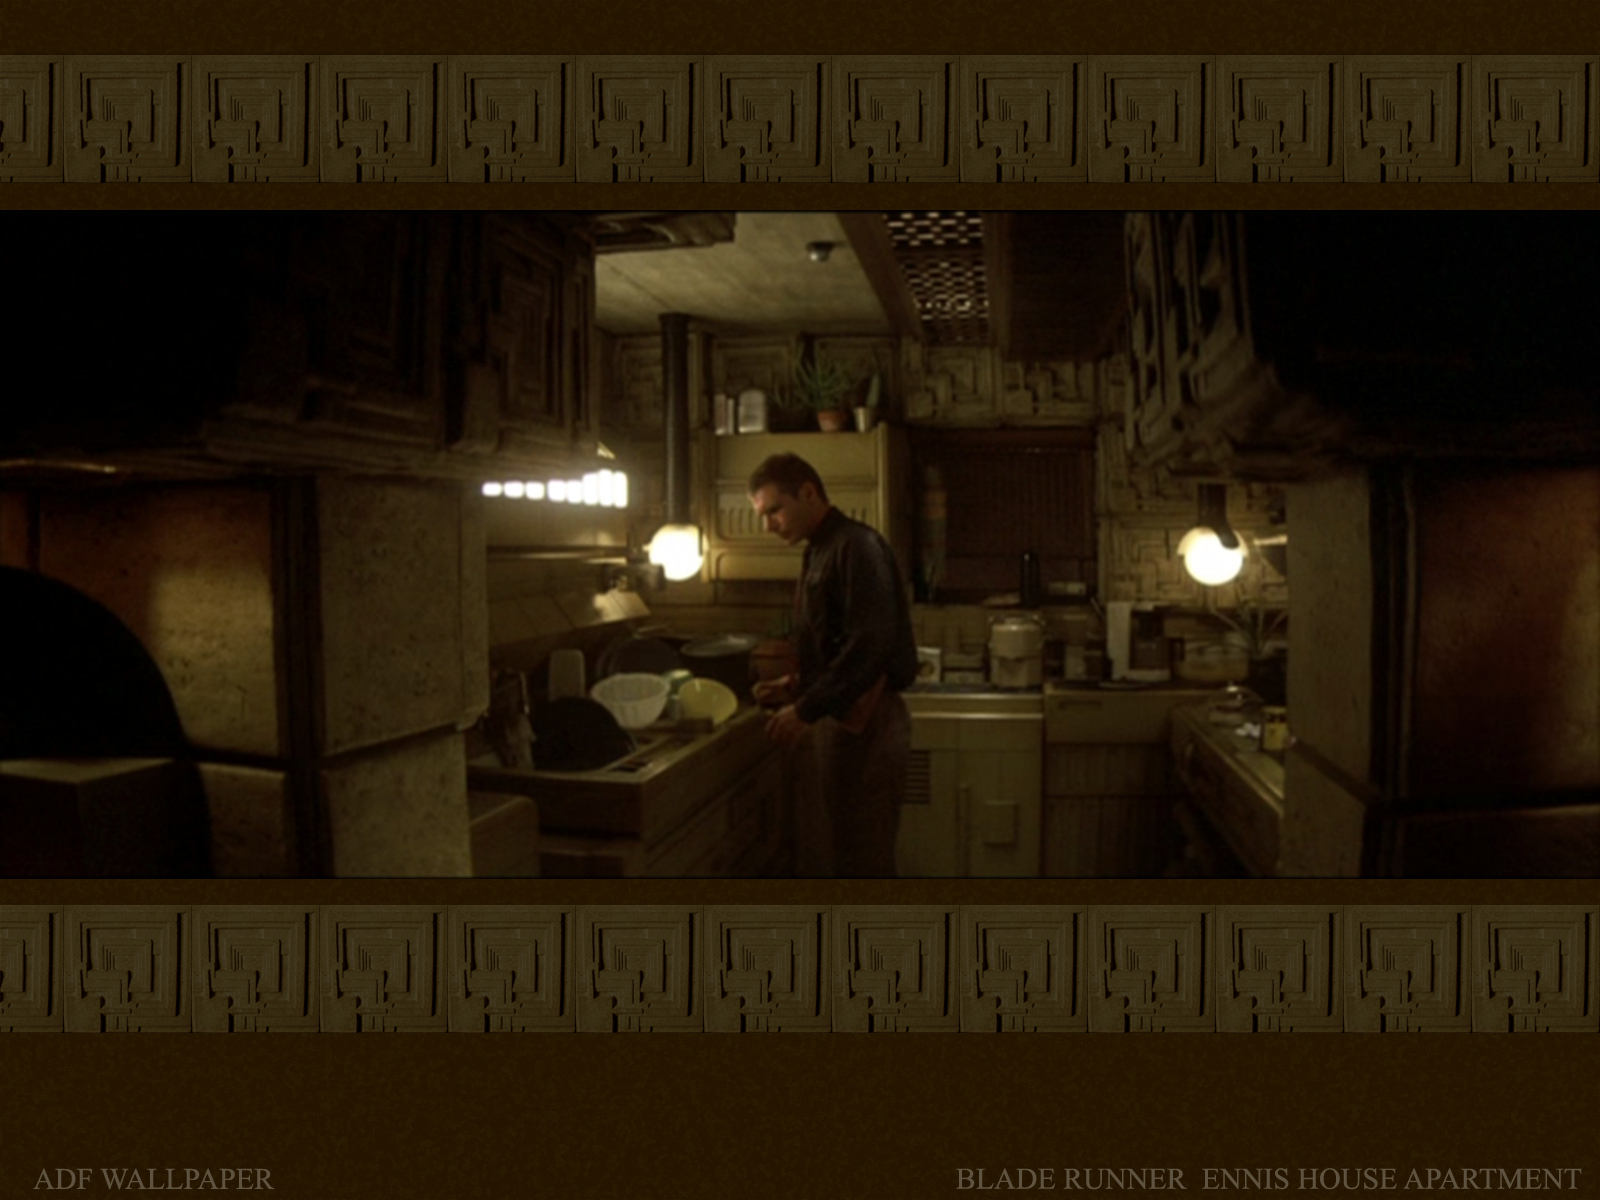 of Deckard's apartment in the classic Ridley Scott film Blade Runner.